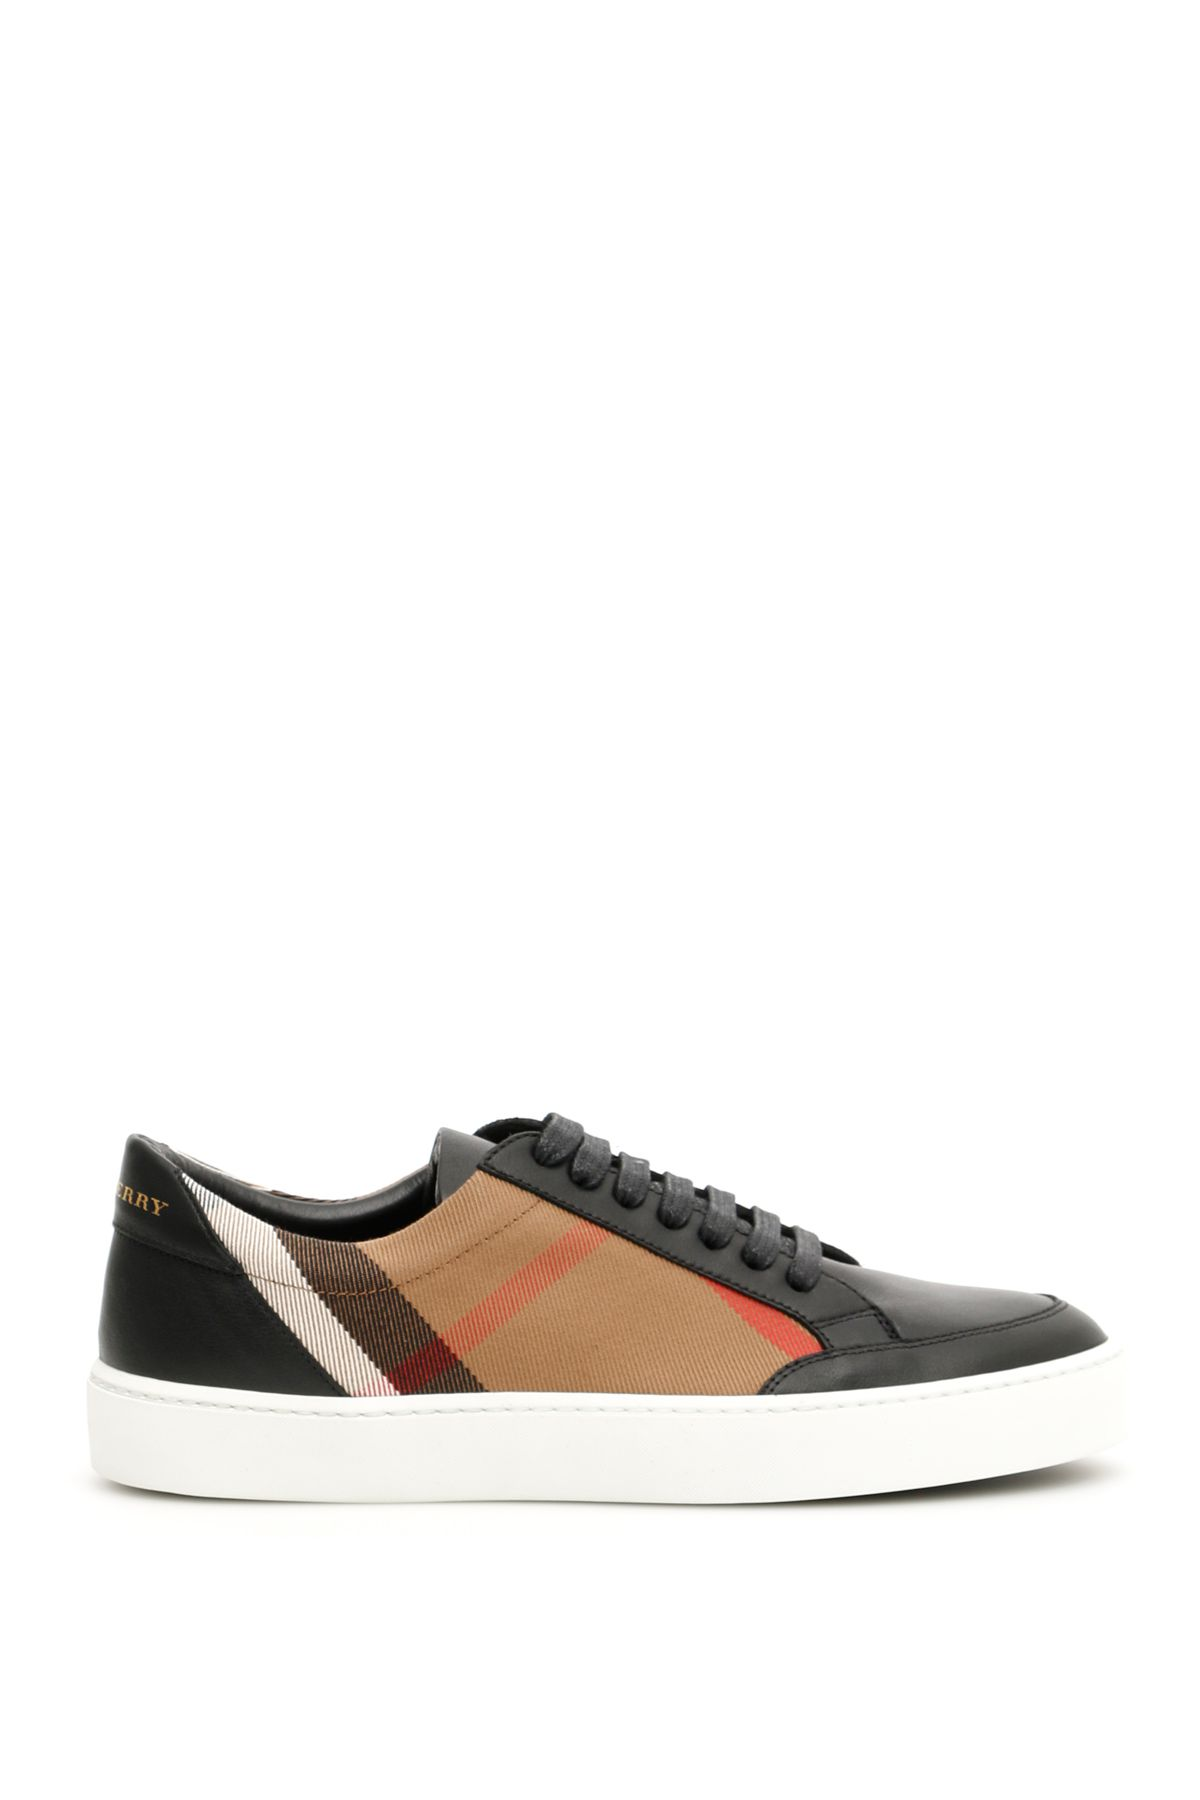 burberry shoes women salmond sneakers